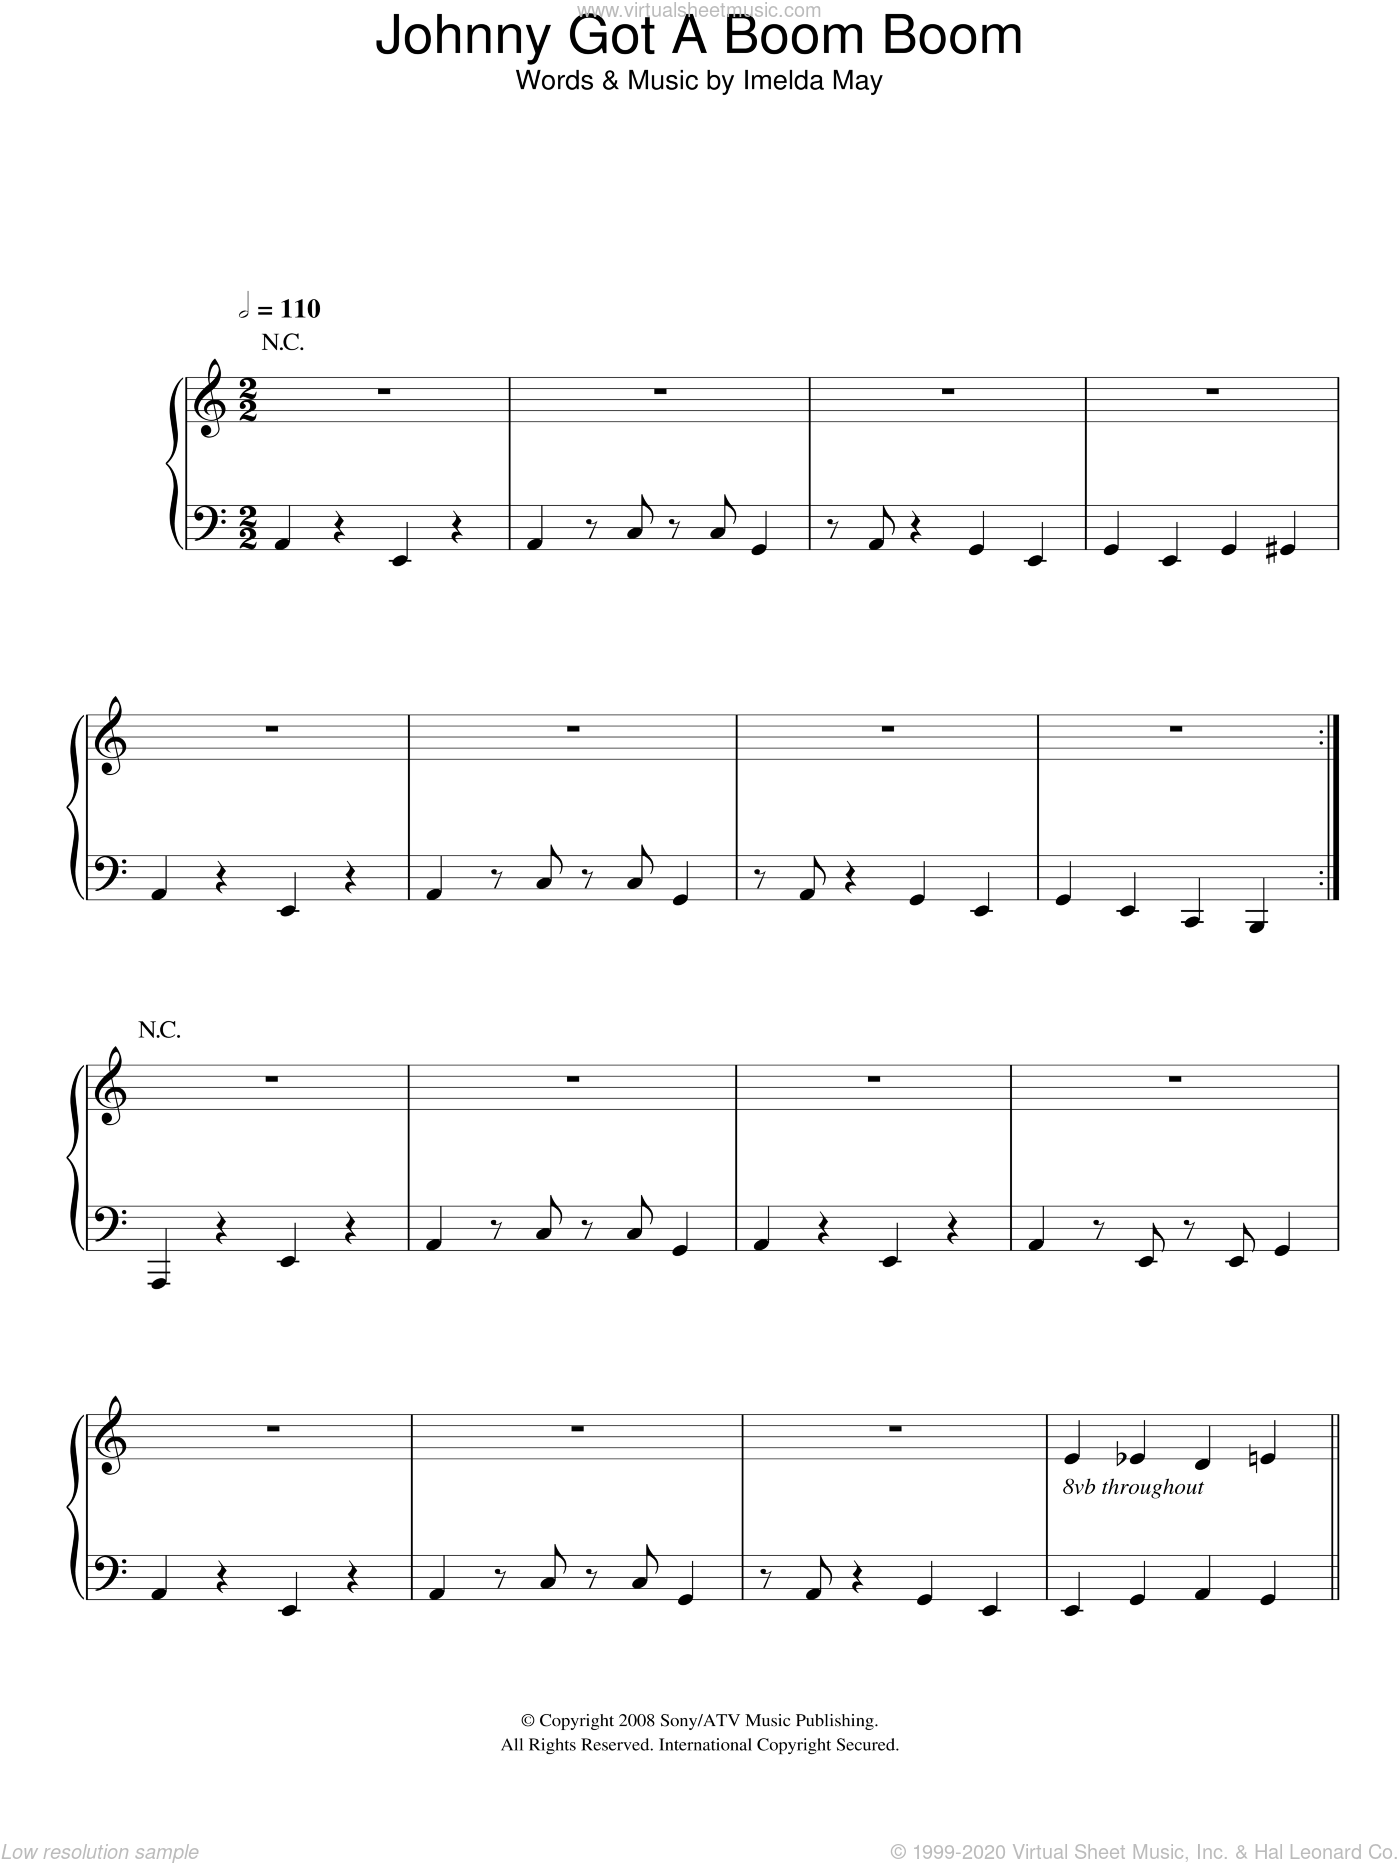 Johnny Got A Boom Boom sheet music for voice, piano or guitar by Imelda May